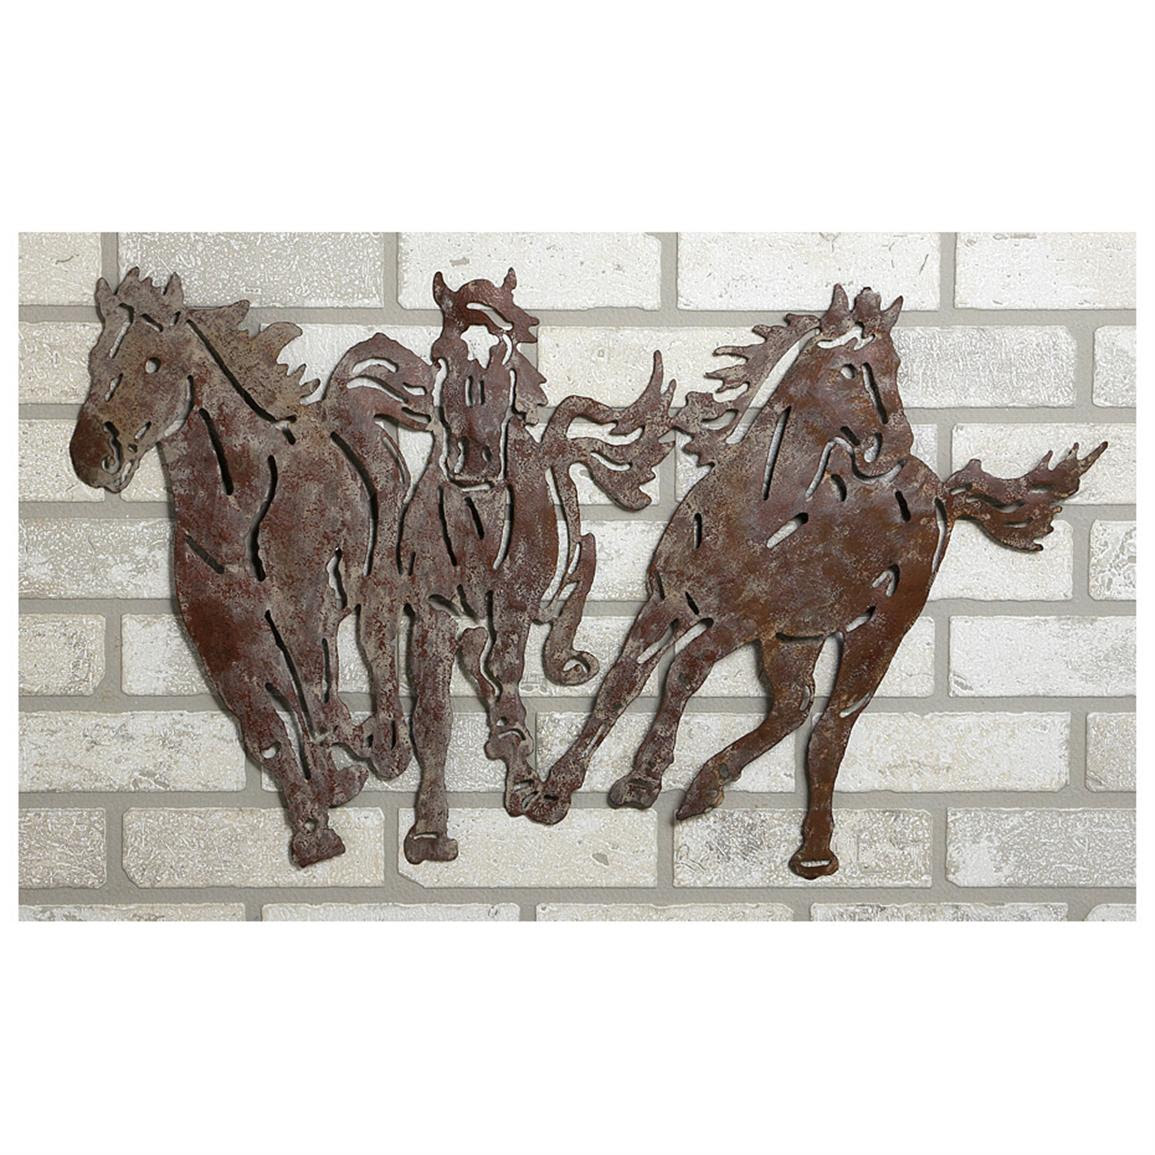 River of Goods® Wild Horses Metal Wall Art - 581832, Decorative Accessories at Sportsman's Guide